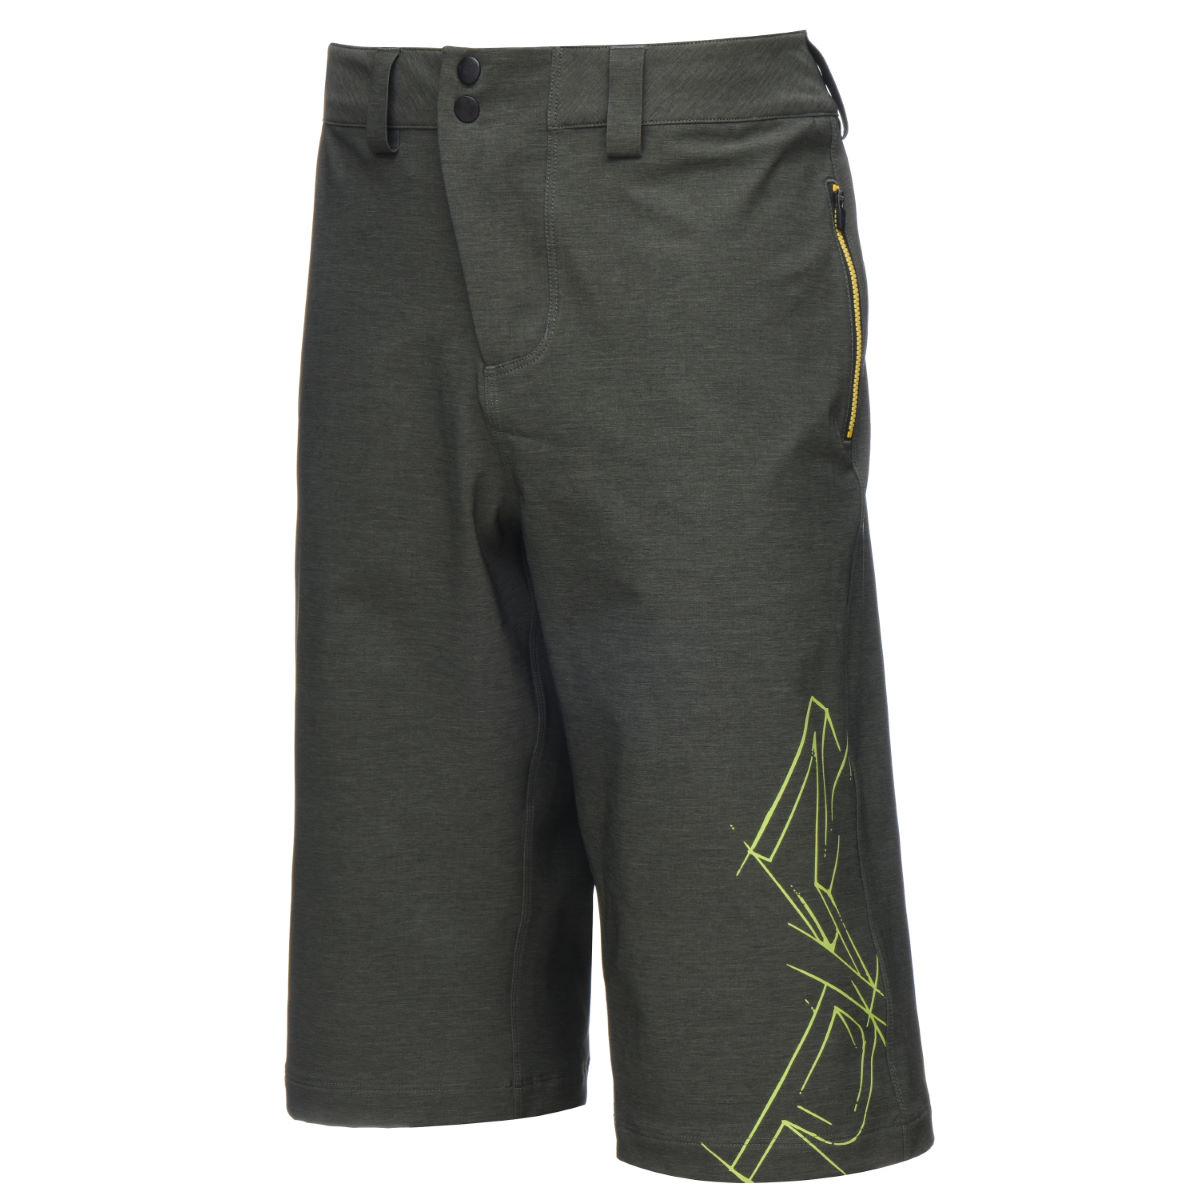 Short Nukeproof Blackline NP - Large Kaki Shorts amples